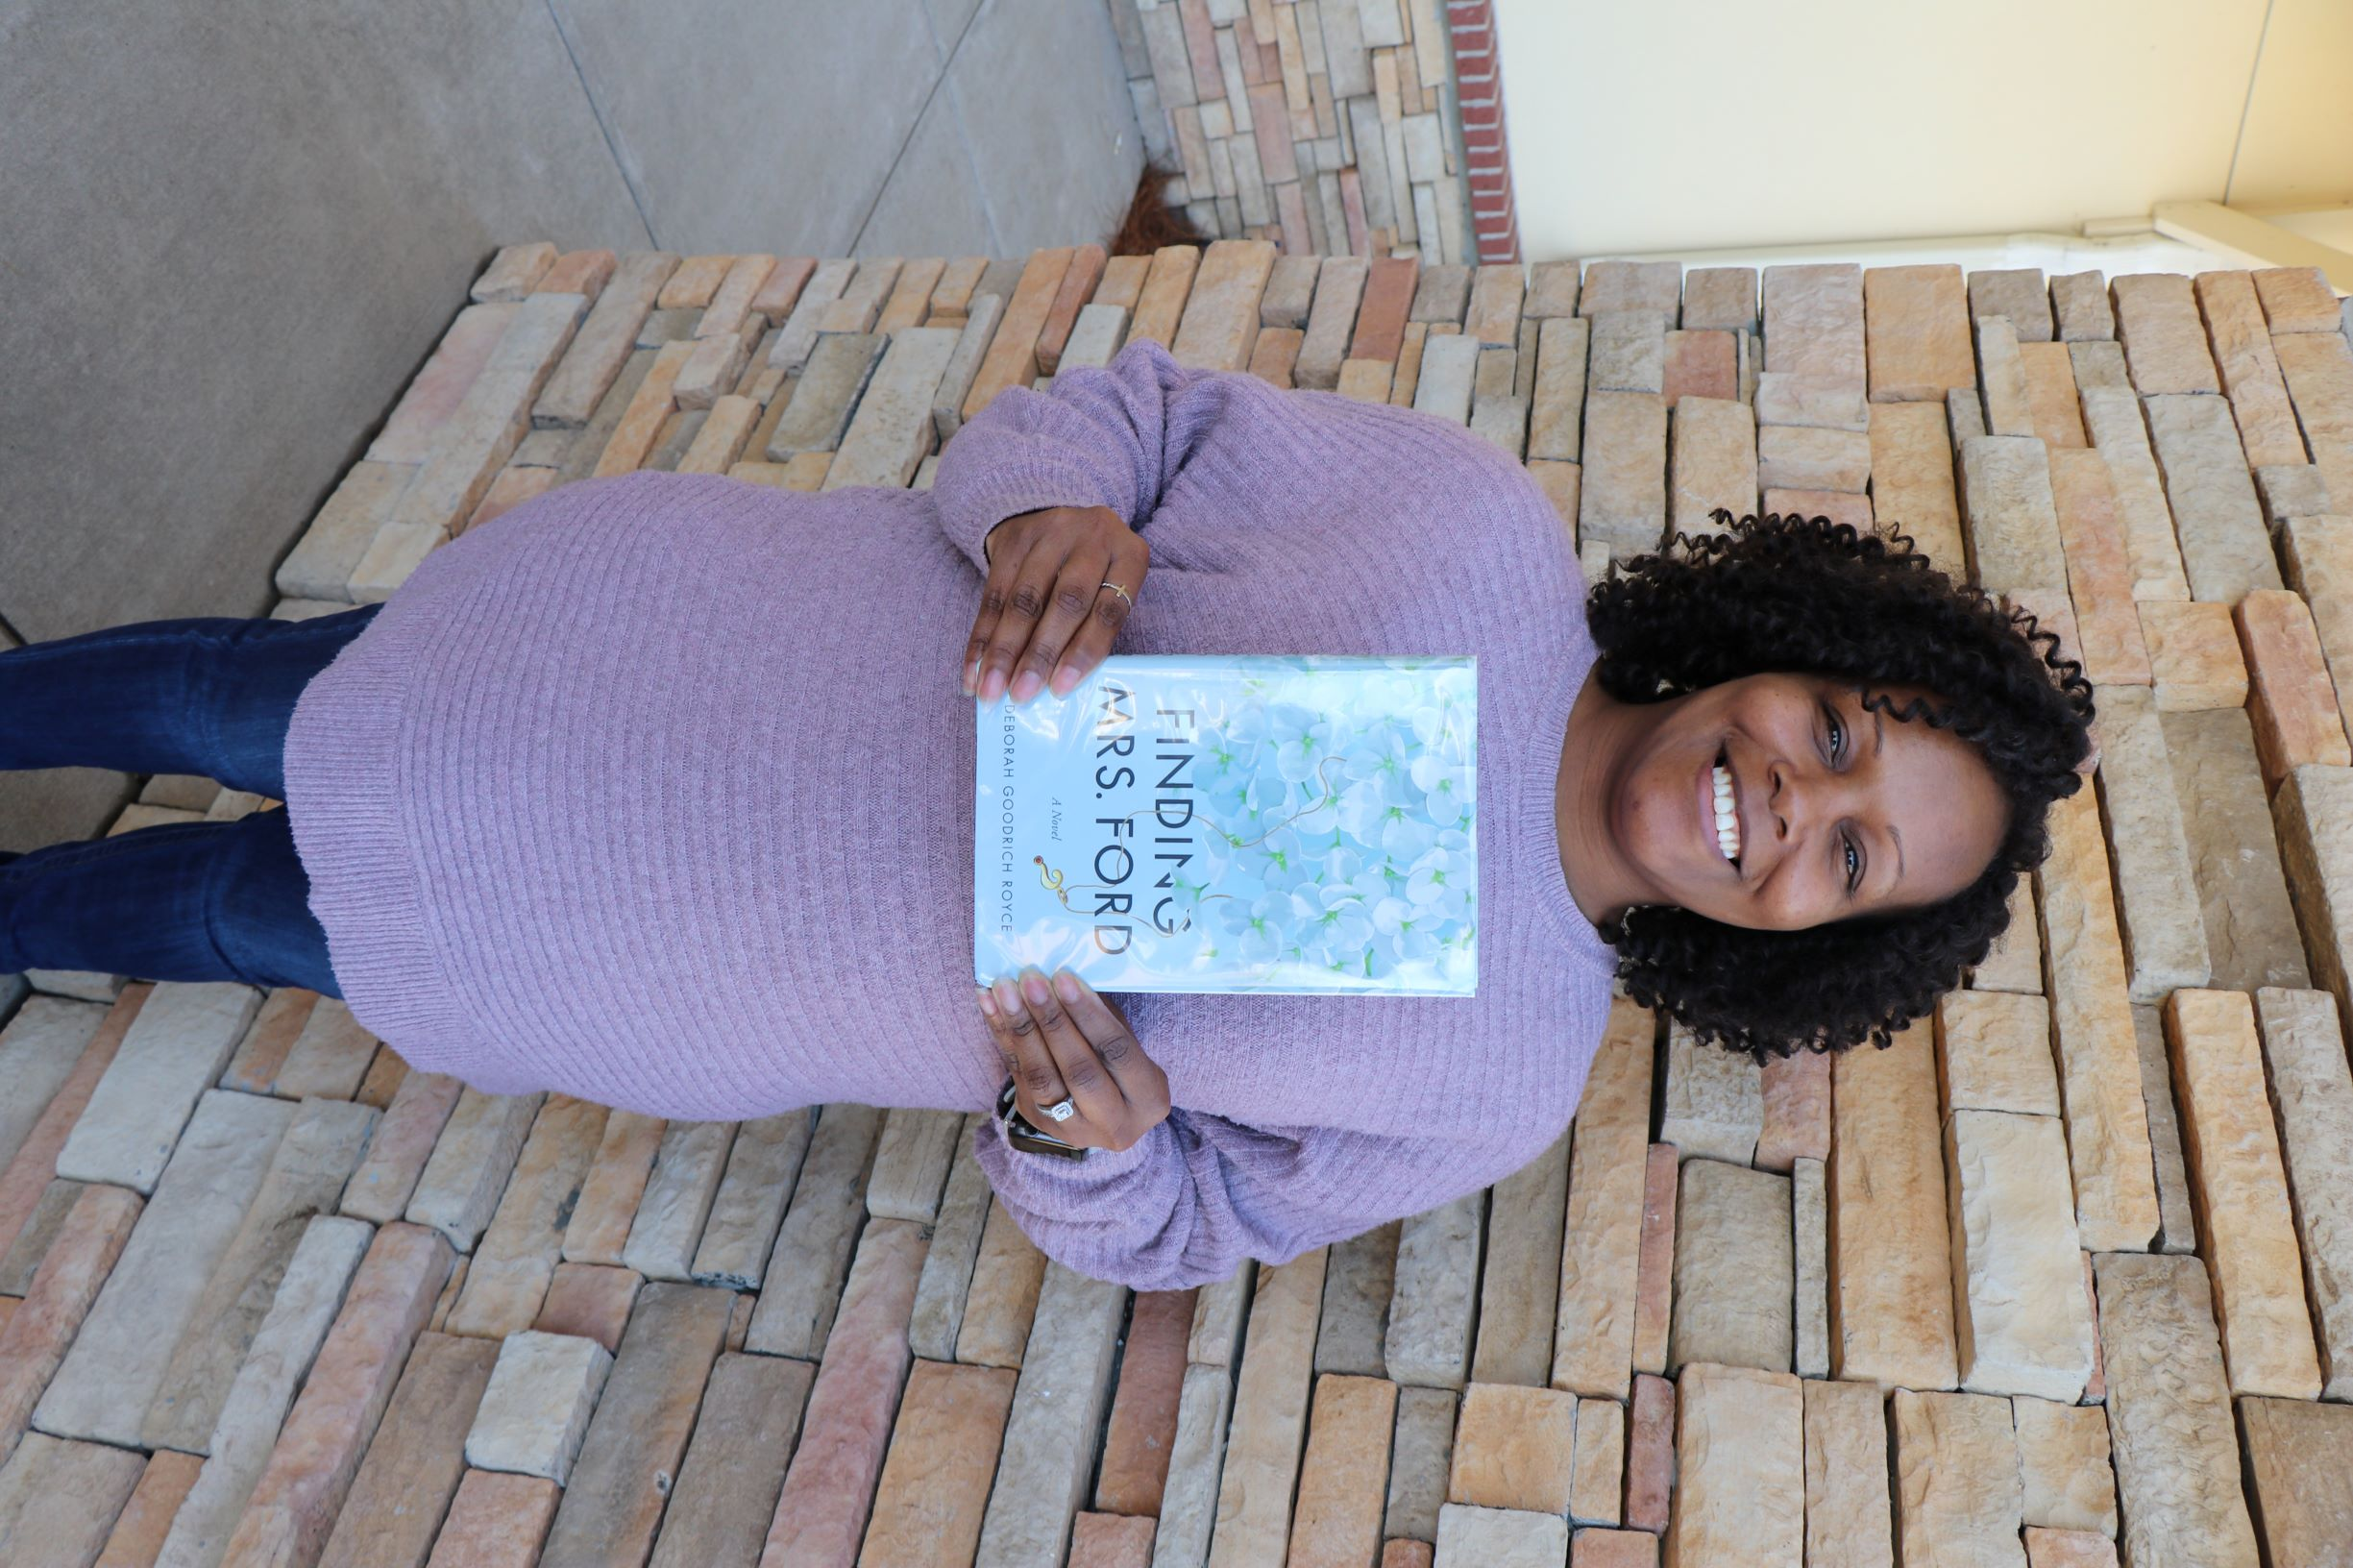 A woman stands in front of a brick wall. She is holding the book Finding Mrs. Ford